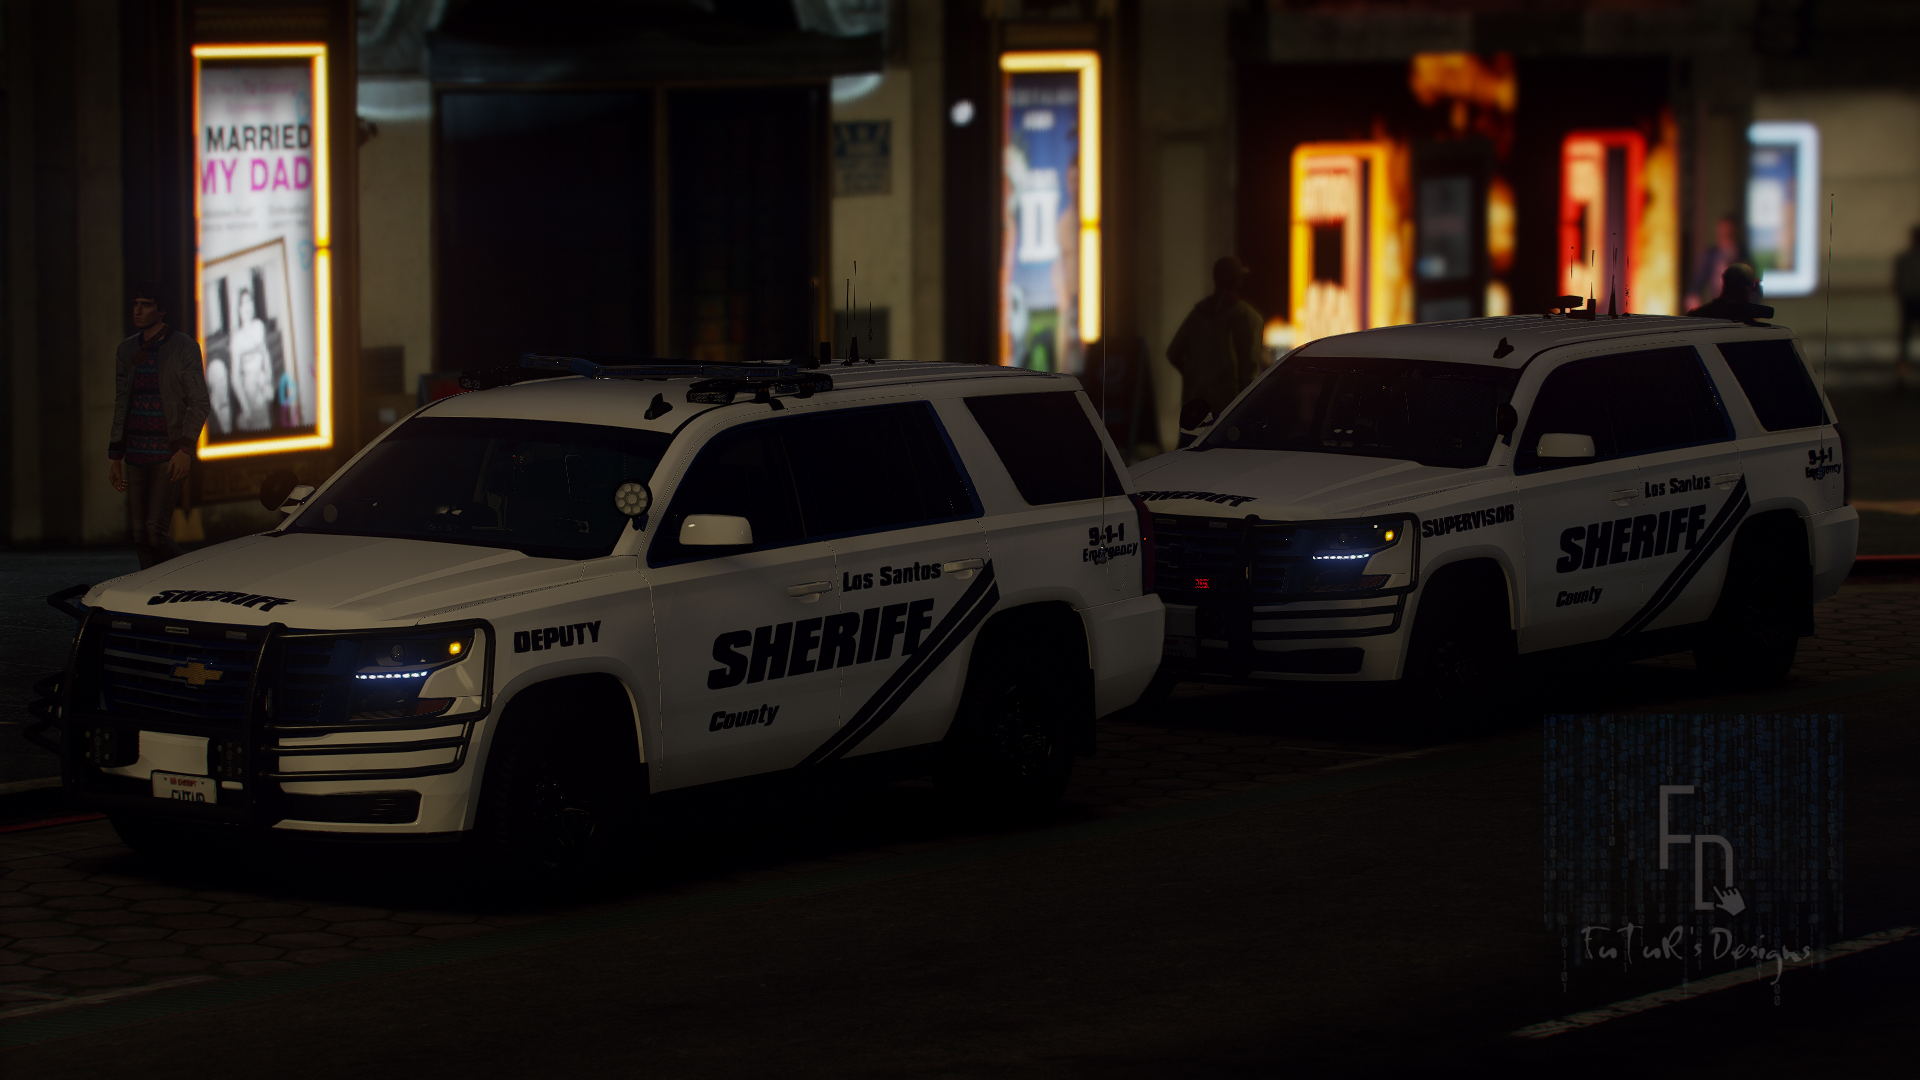 Grand_Theft_Auto_V_10_09_2021_21_40_59.png